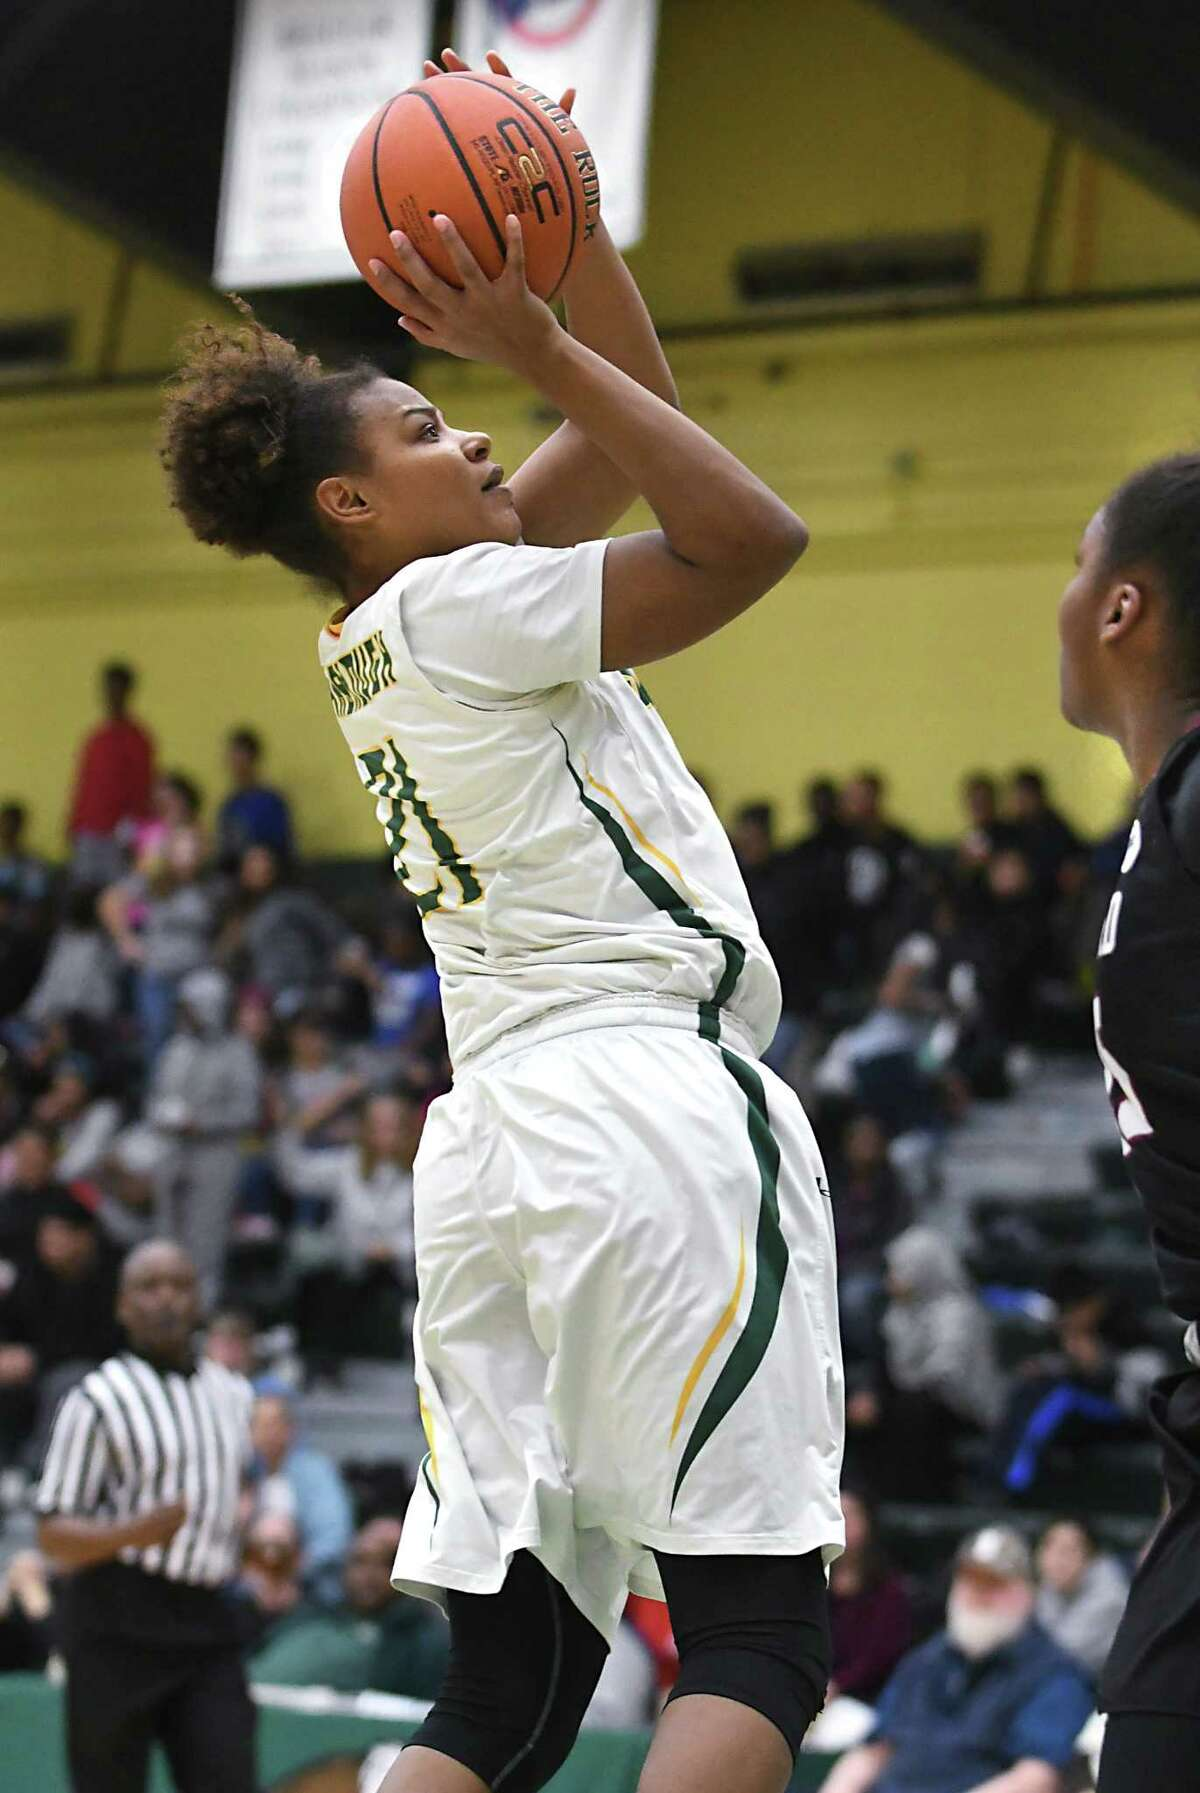 Siena's Kollyns Scarbrough makes a two pointer during a basketball game against Harvard at Siena College on Wednesday, Dec. 21, 2016 in Loudonville, N.Y. (Lori Van Buren / Times Union)